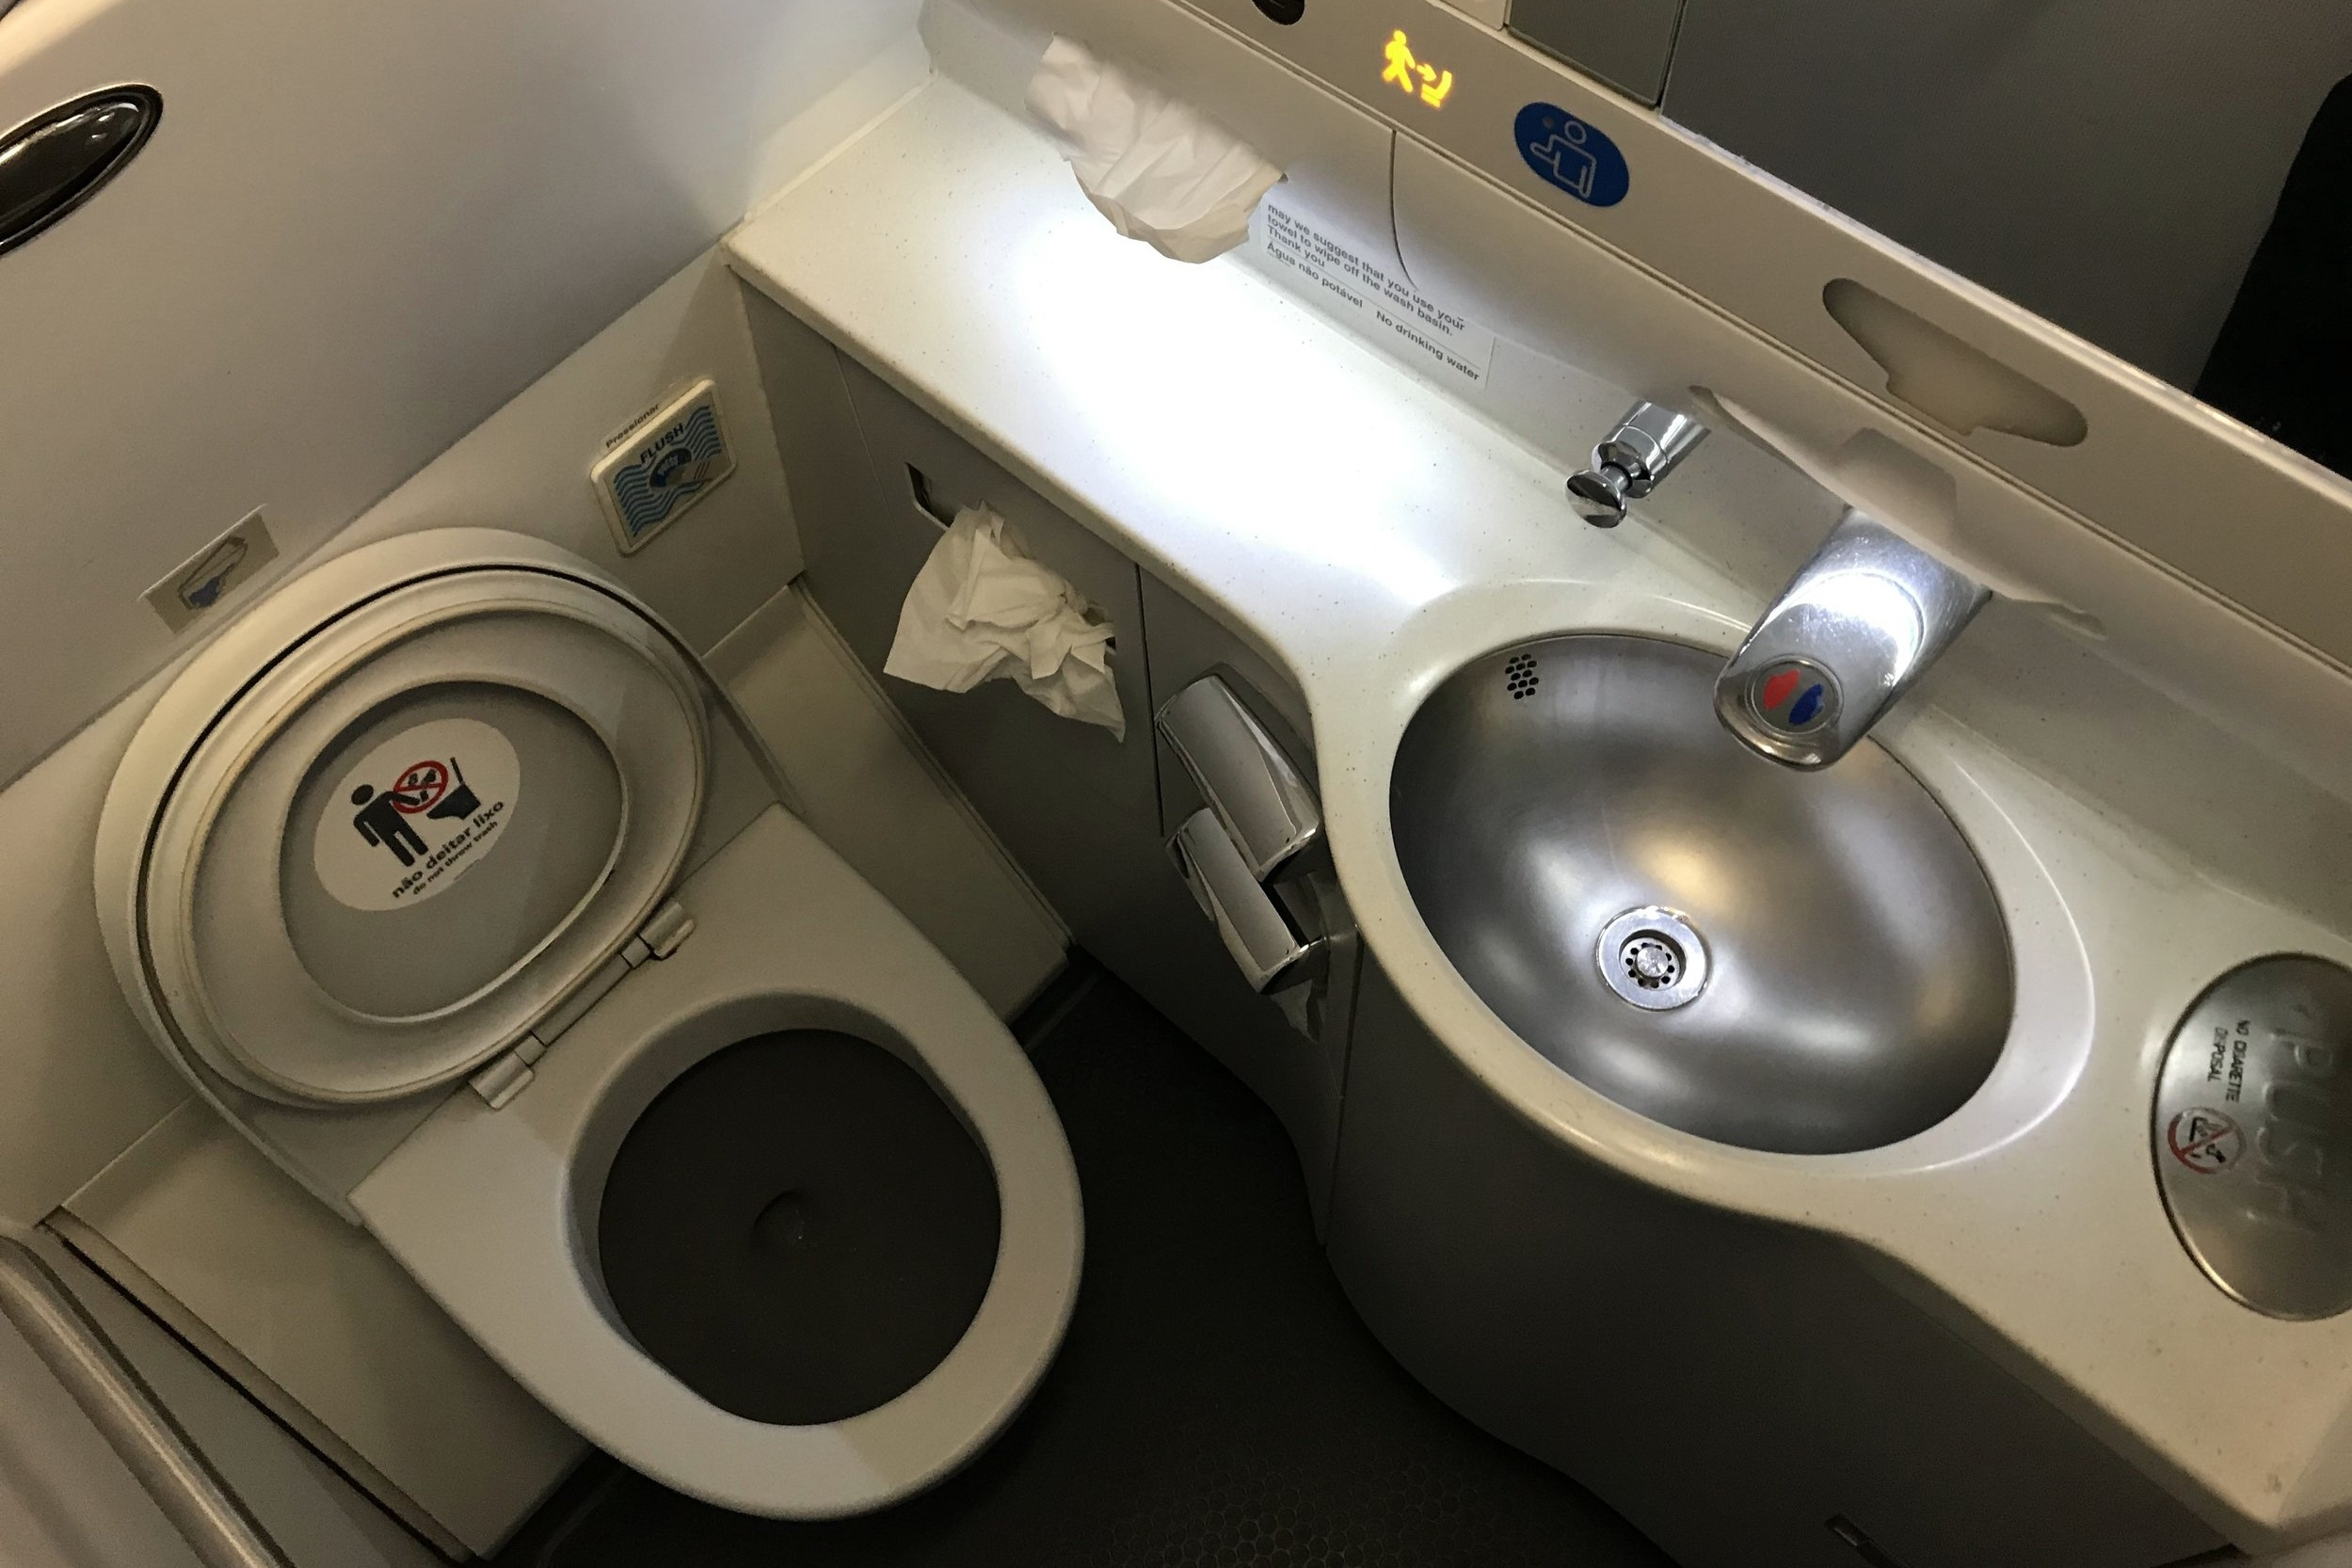 TAP Air Portugal business class – Restroom